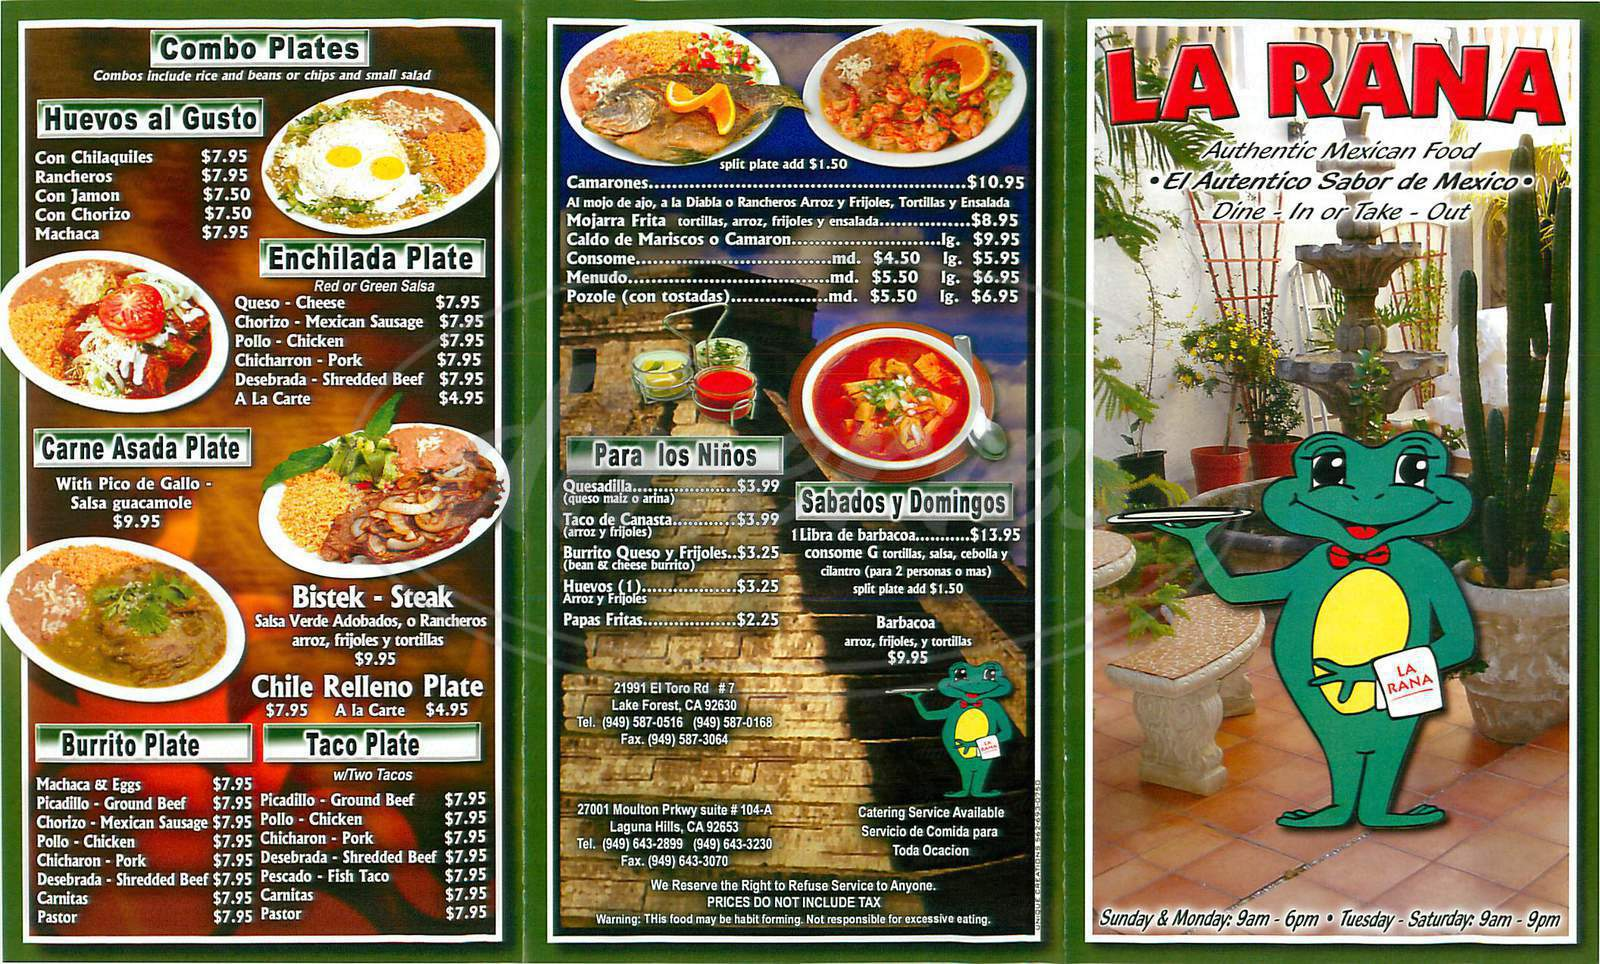 menu for La Rana